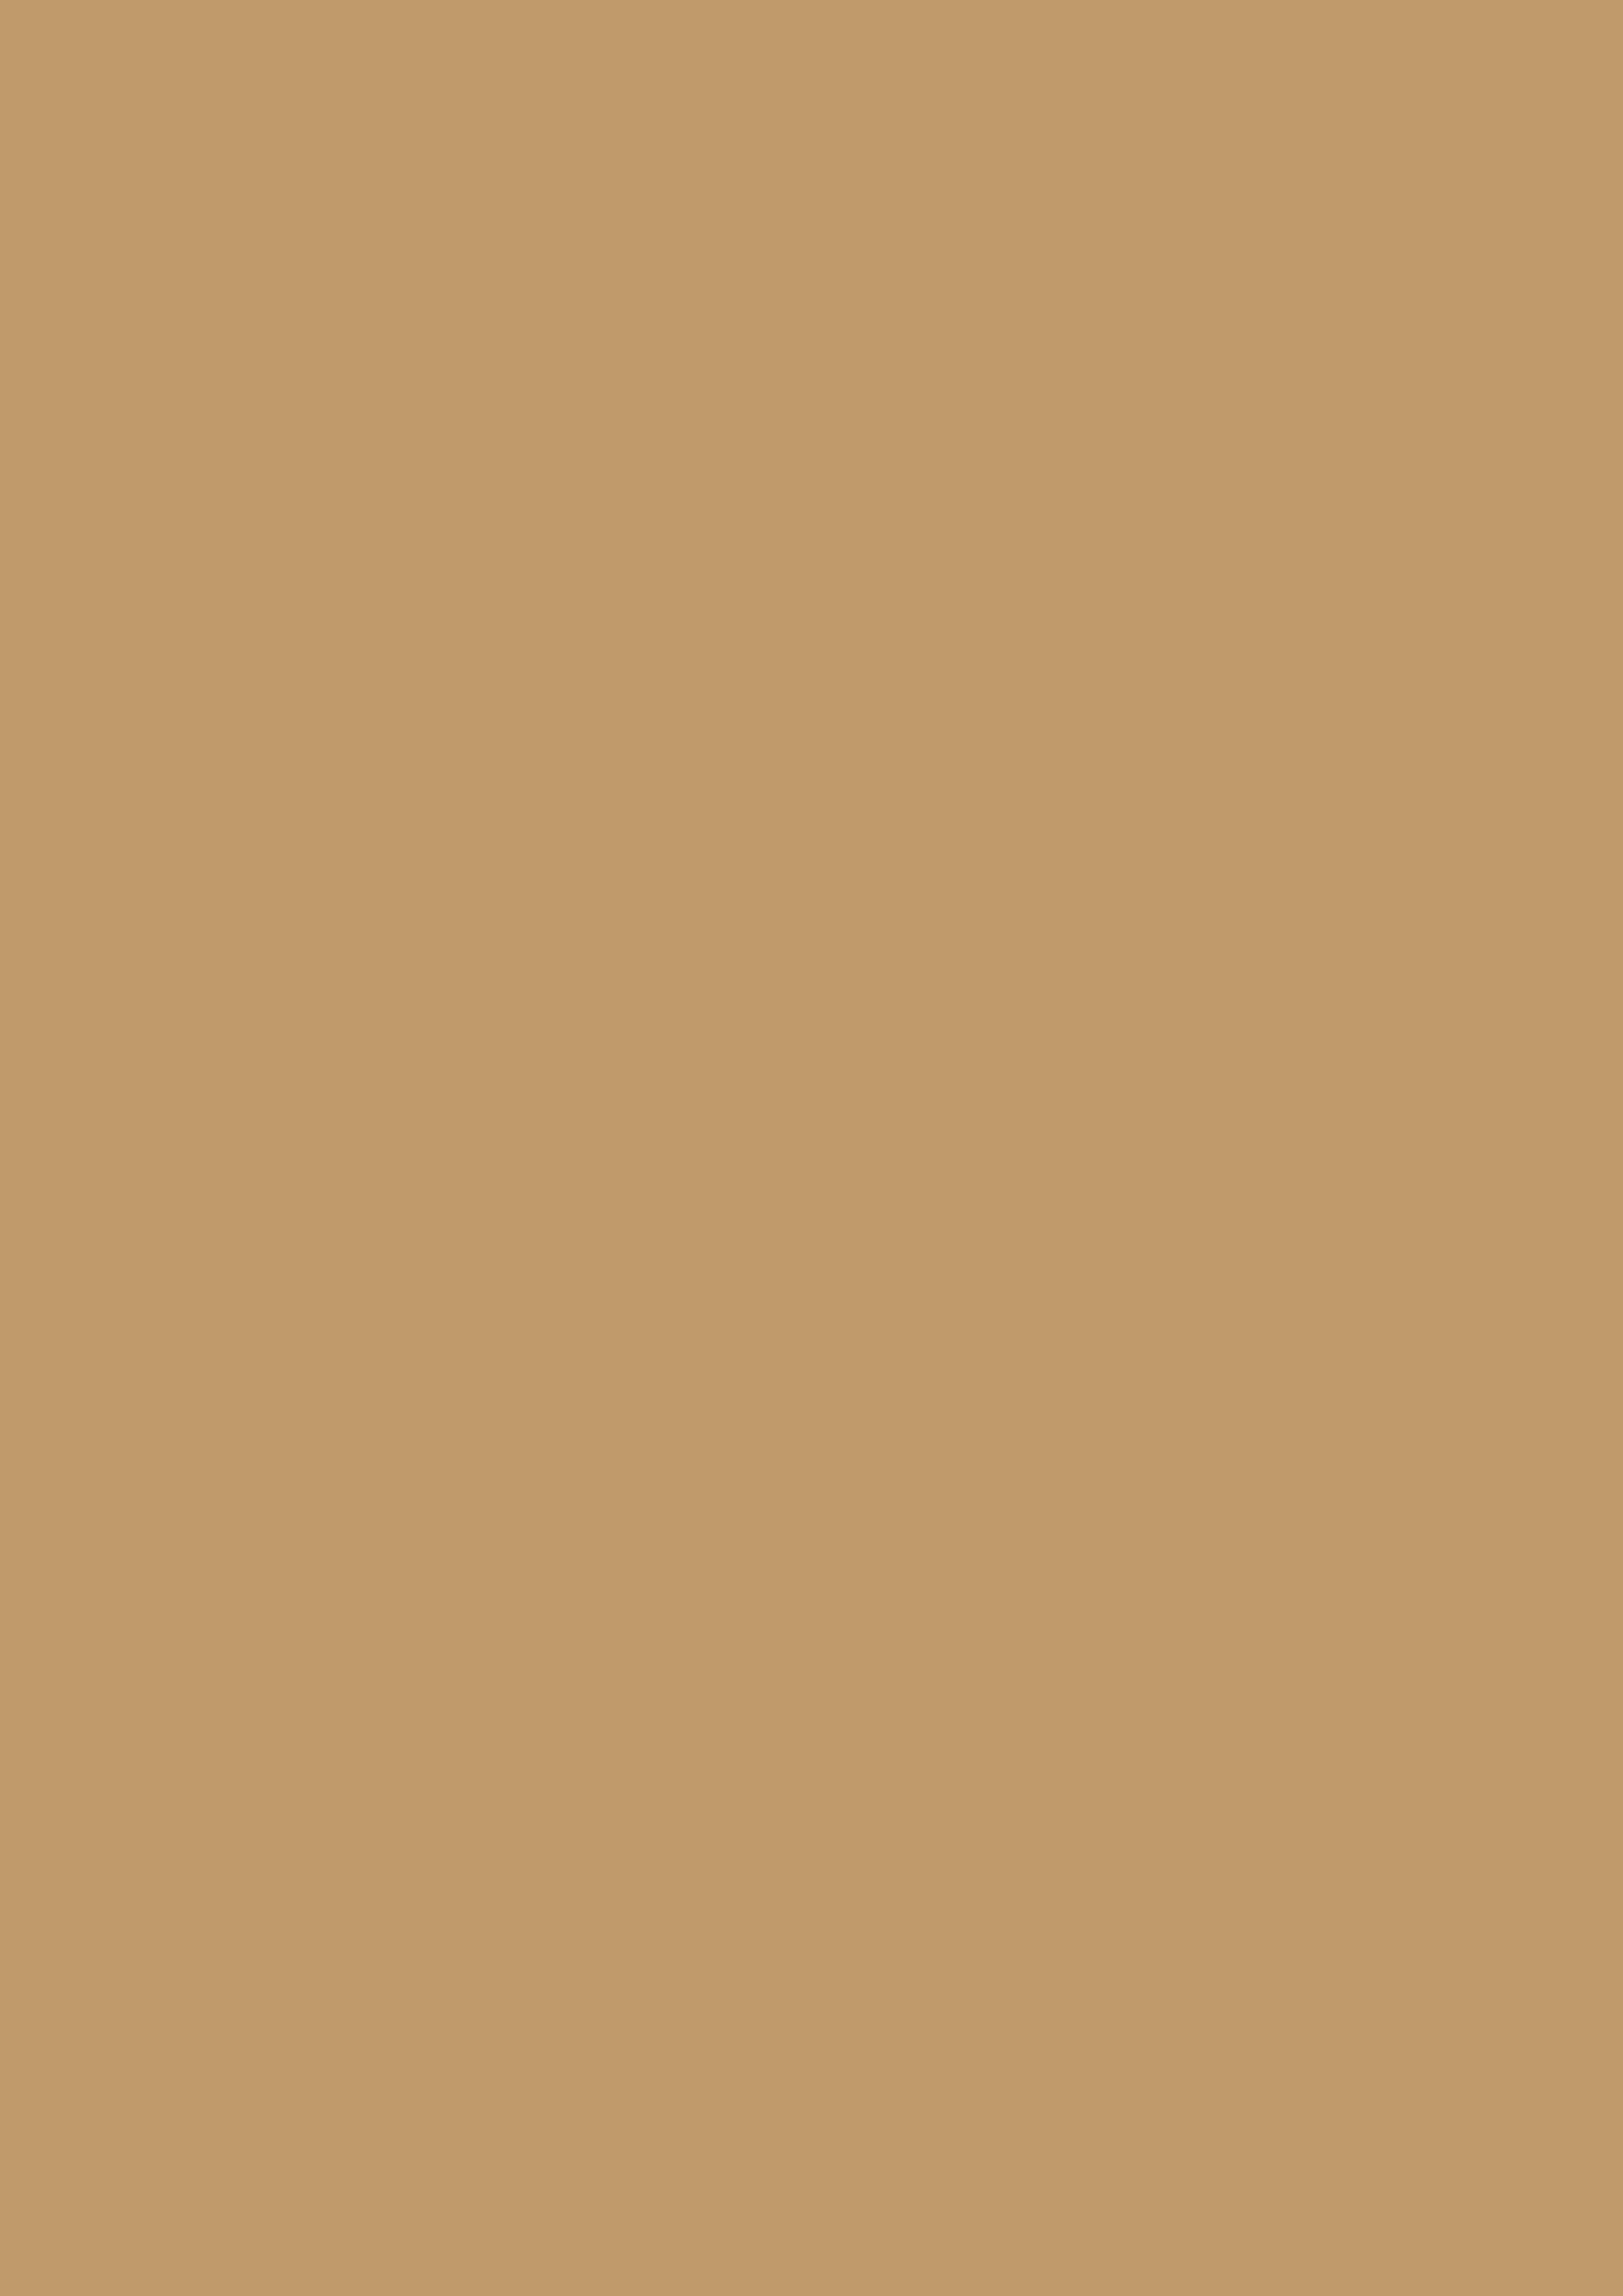 2480x3508 Fallow Solid Color Background